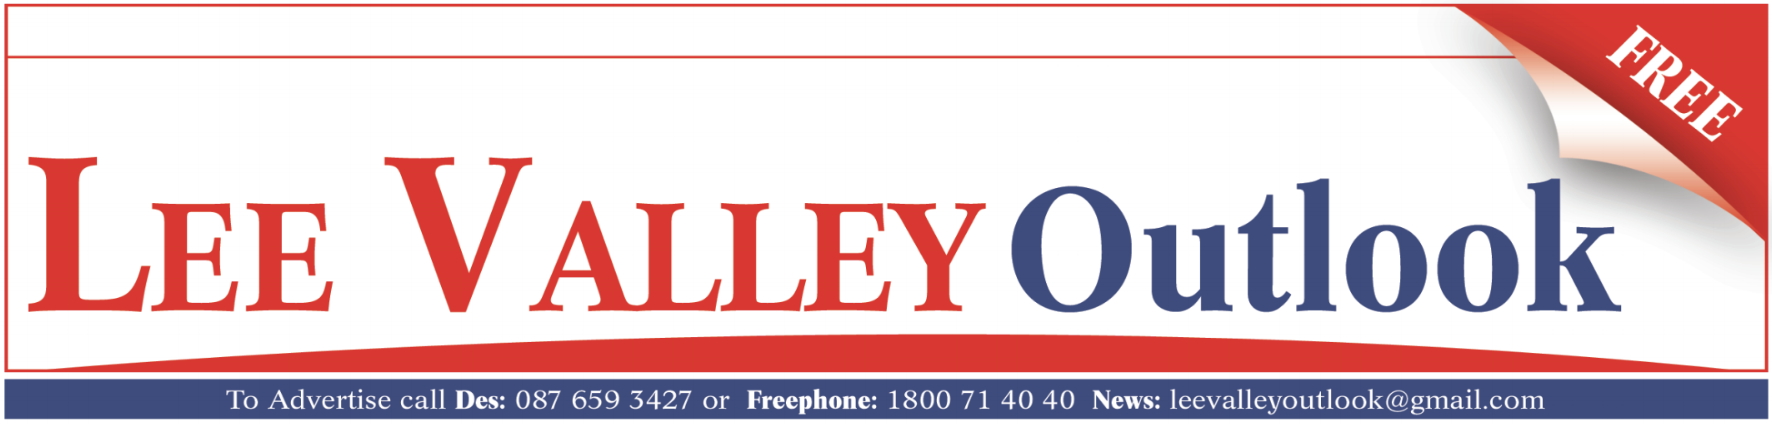 Lee Valley Outlook Logo